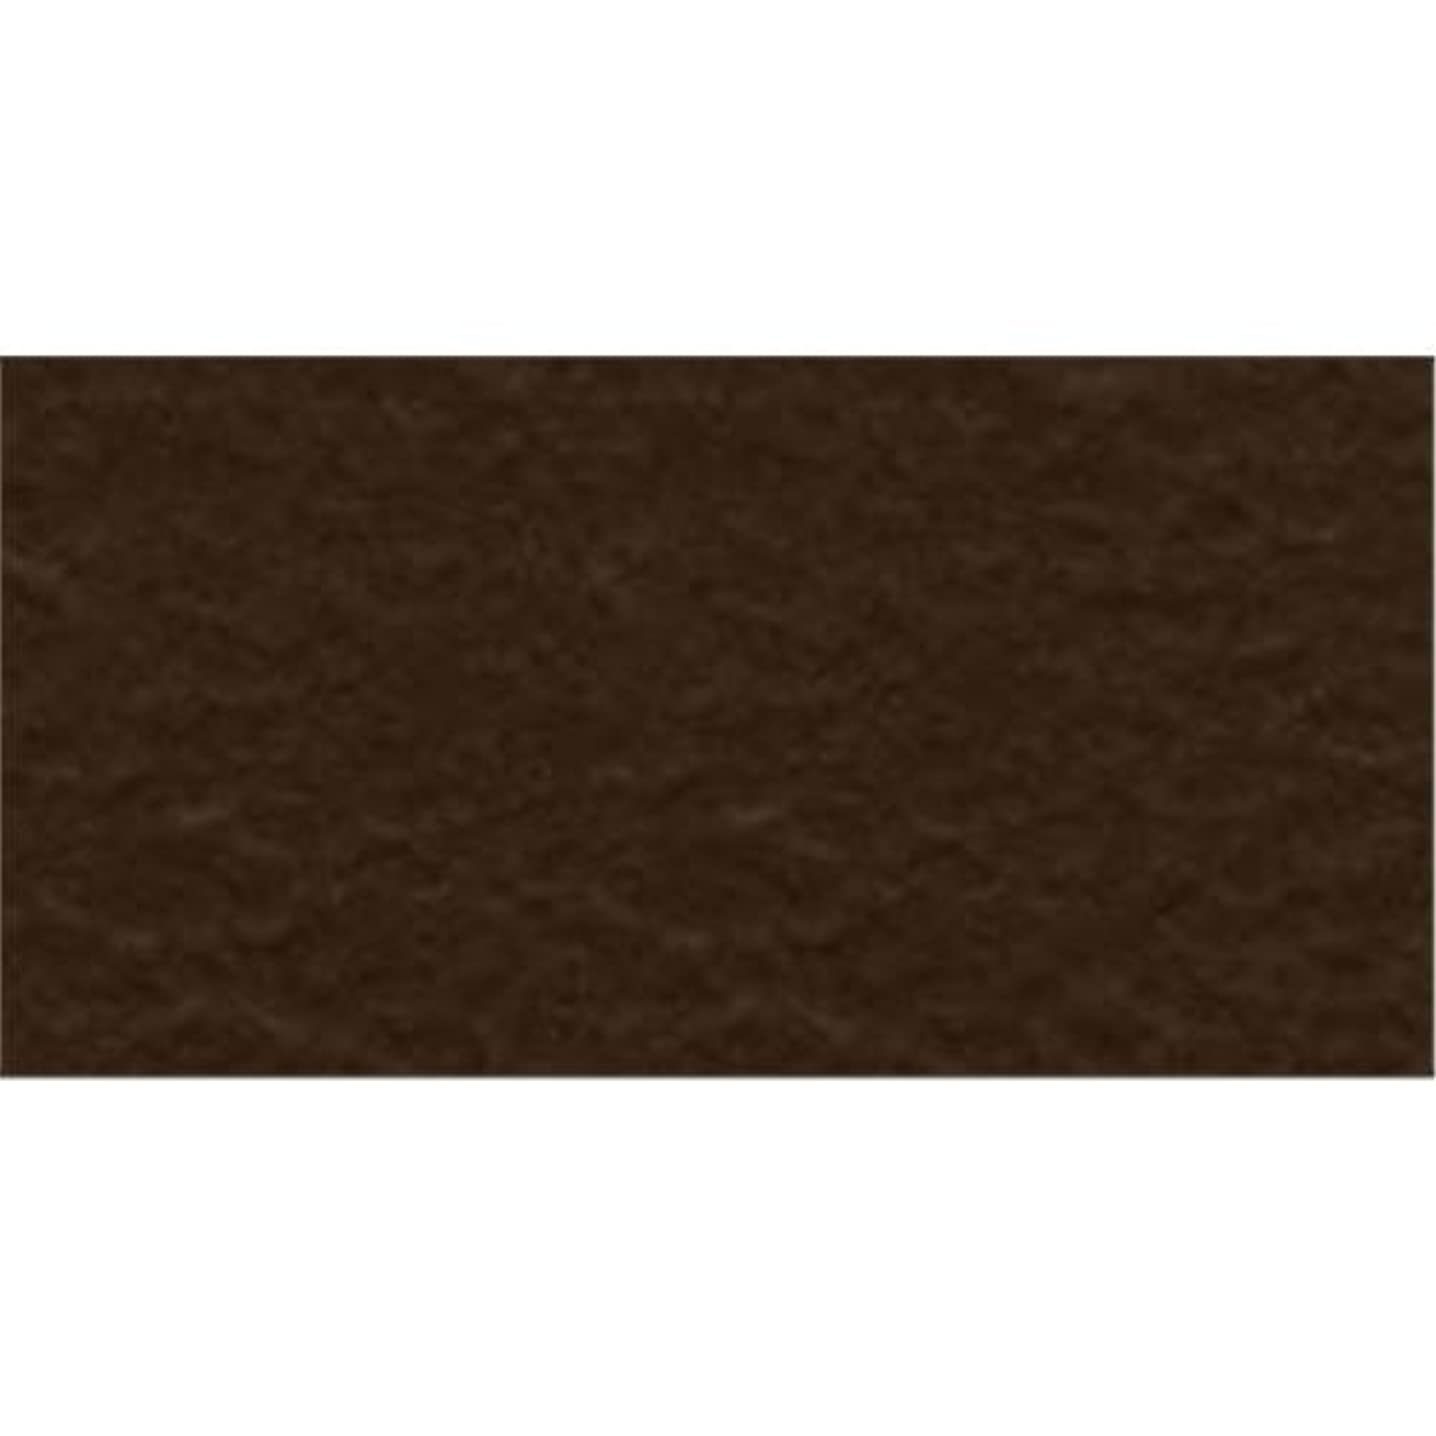 Bazzill Basics Paper 19-9309 Prismatic Cardstock, 25 Sheets, 8.5 by 11-Inch, Suede Brown Dark